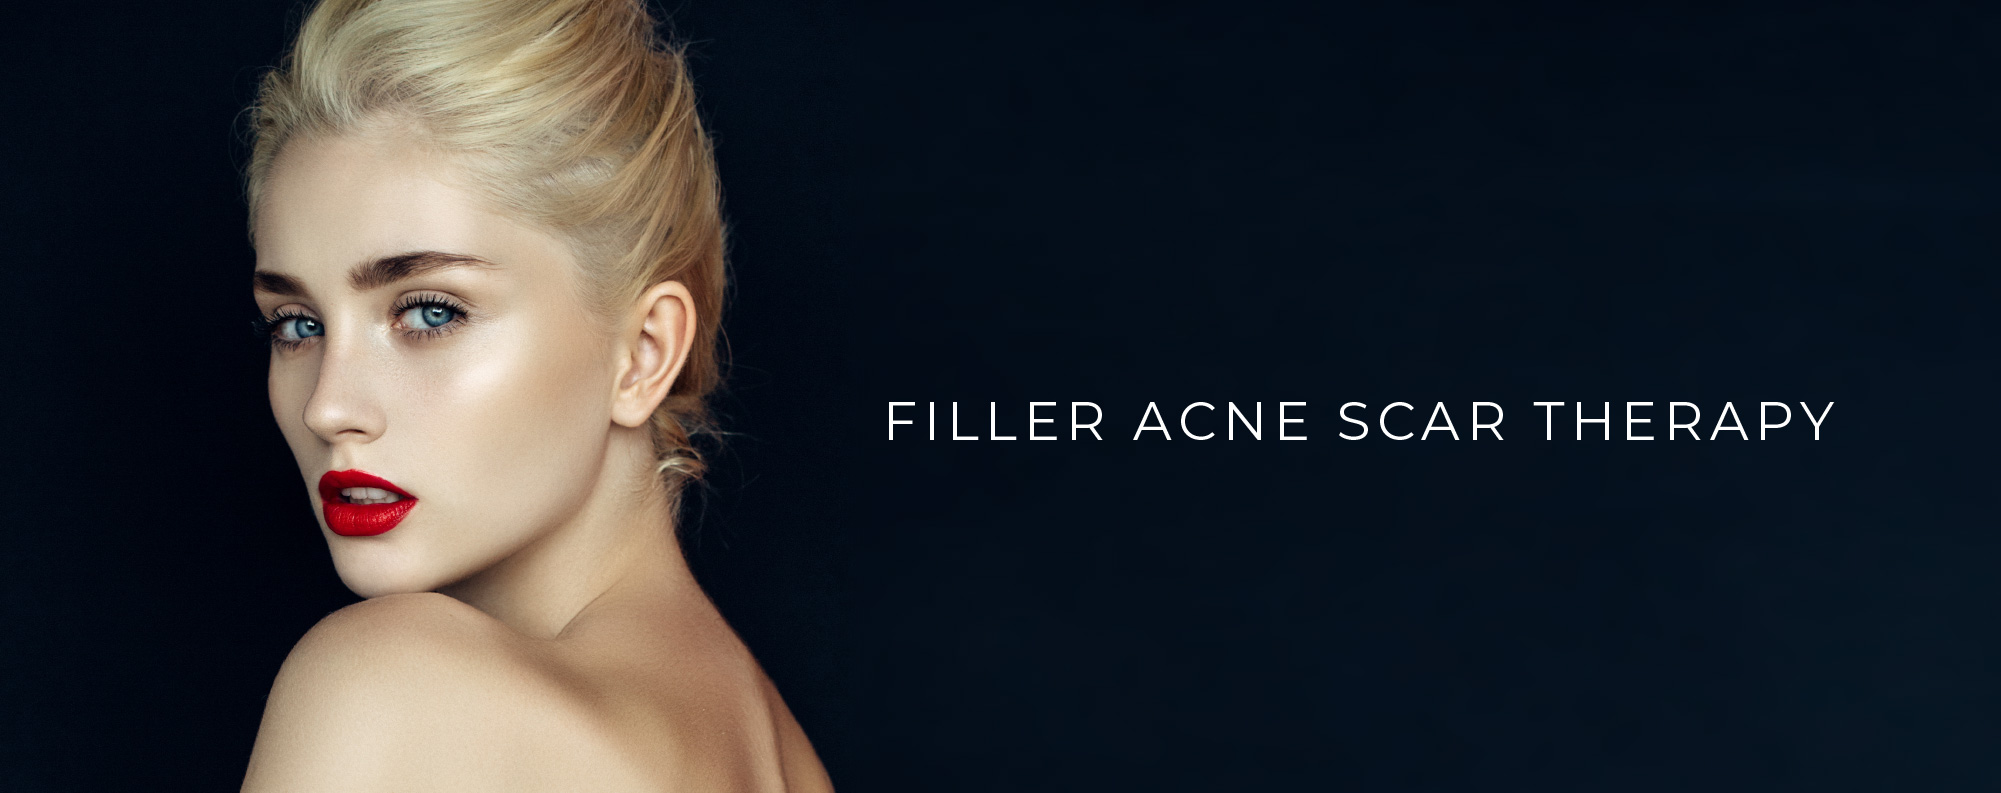 Filler Acne Scar Therapy